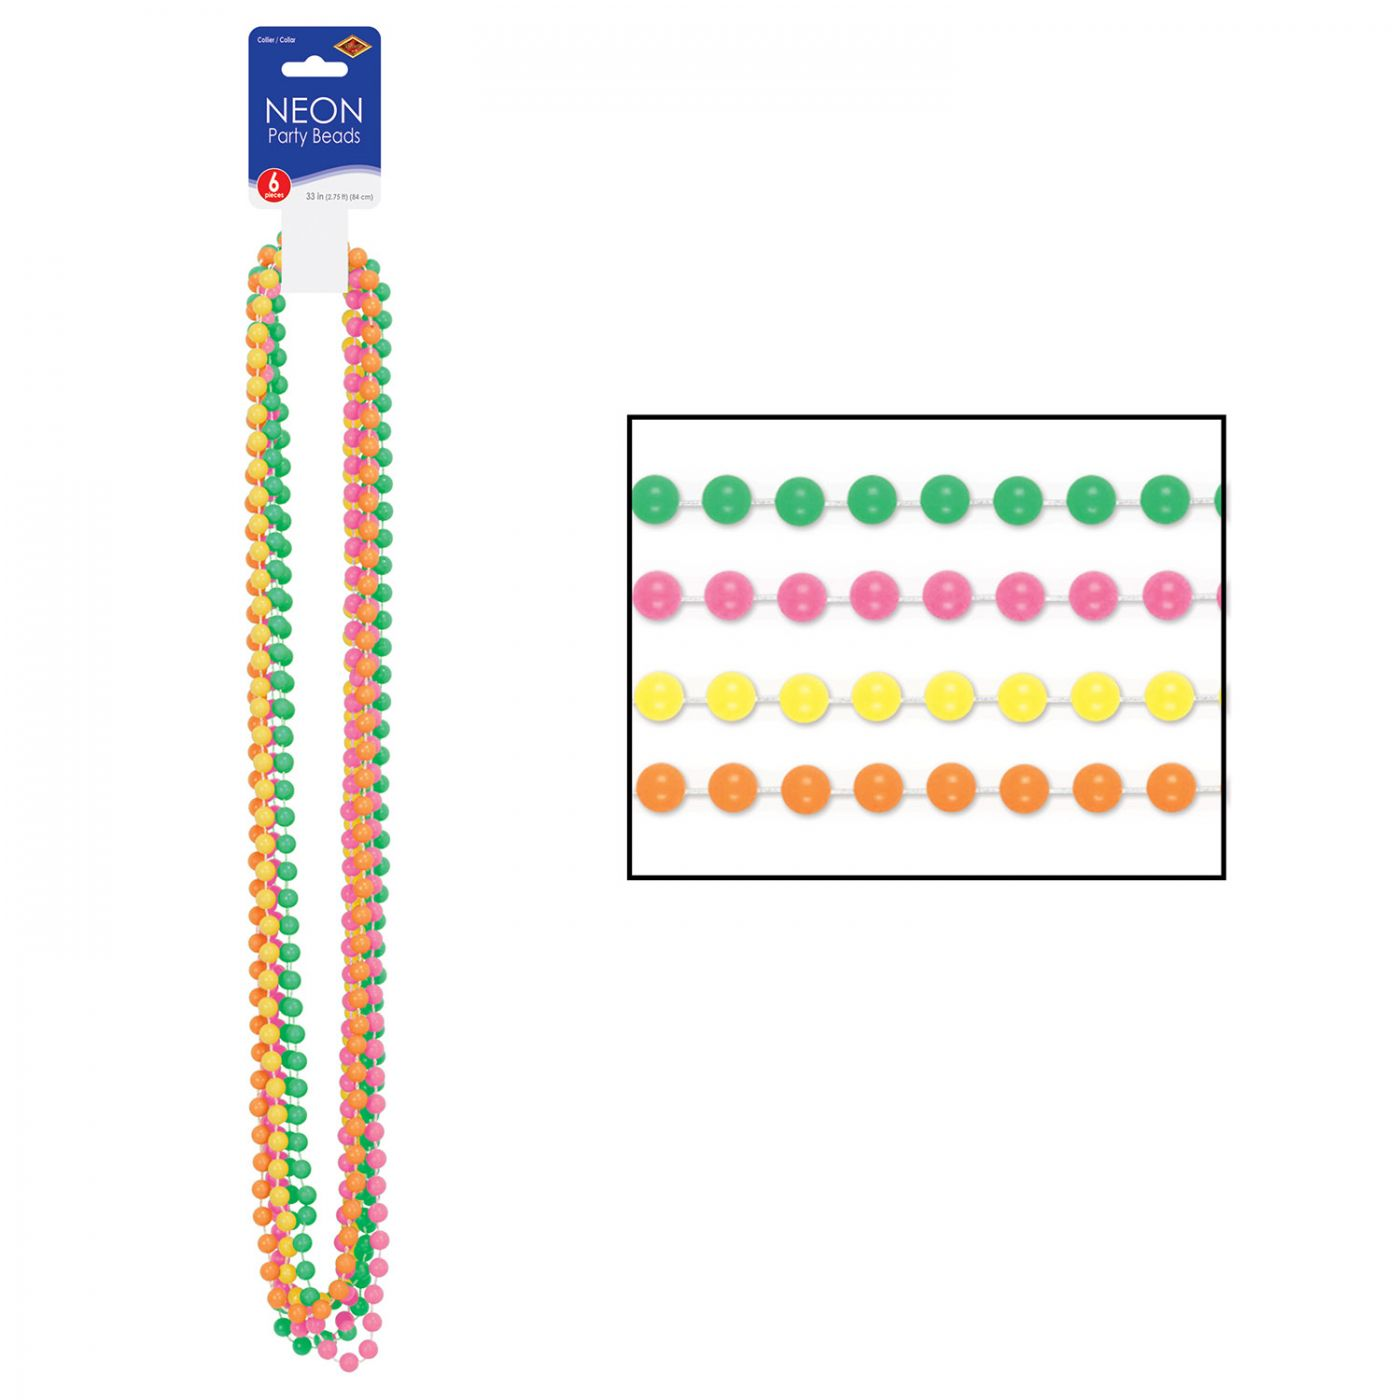 Neon Party Beads image